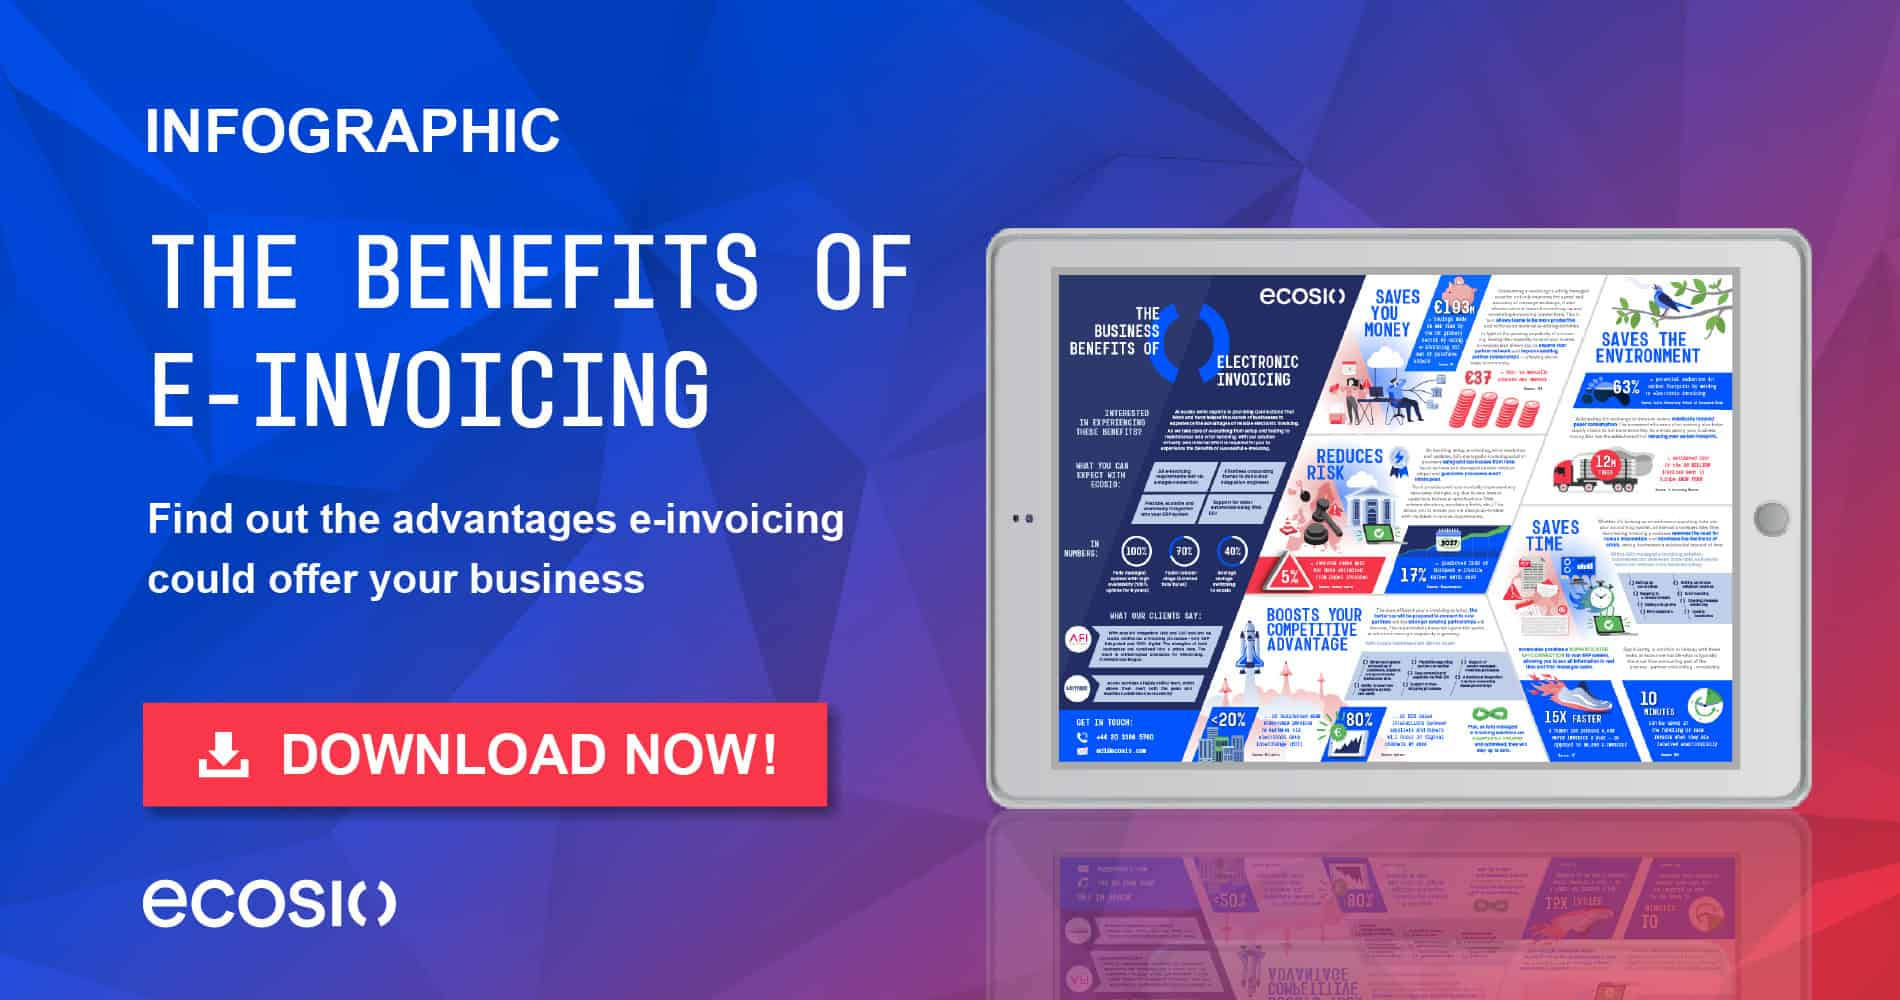 Infographic - The Benefits of E-invoicing